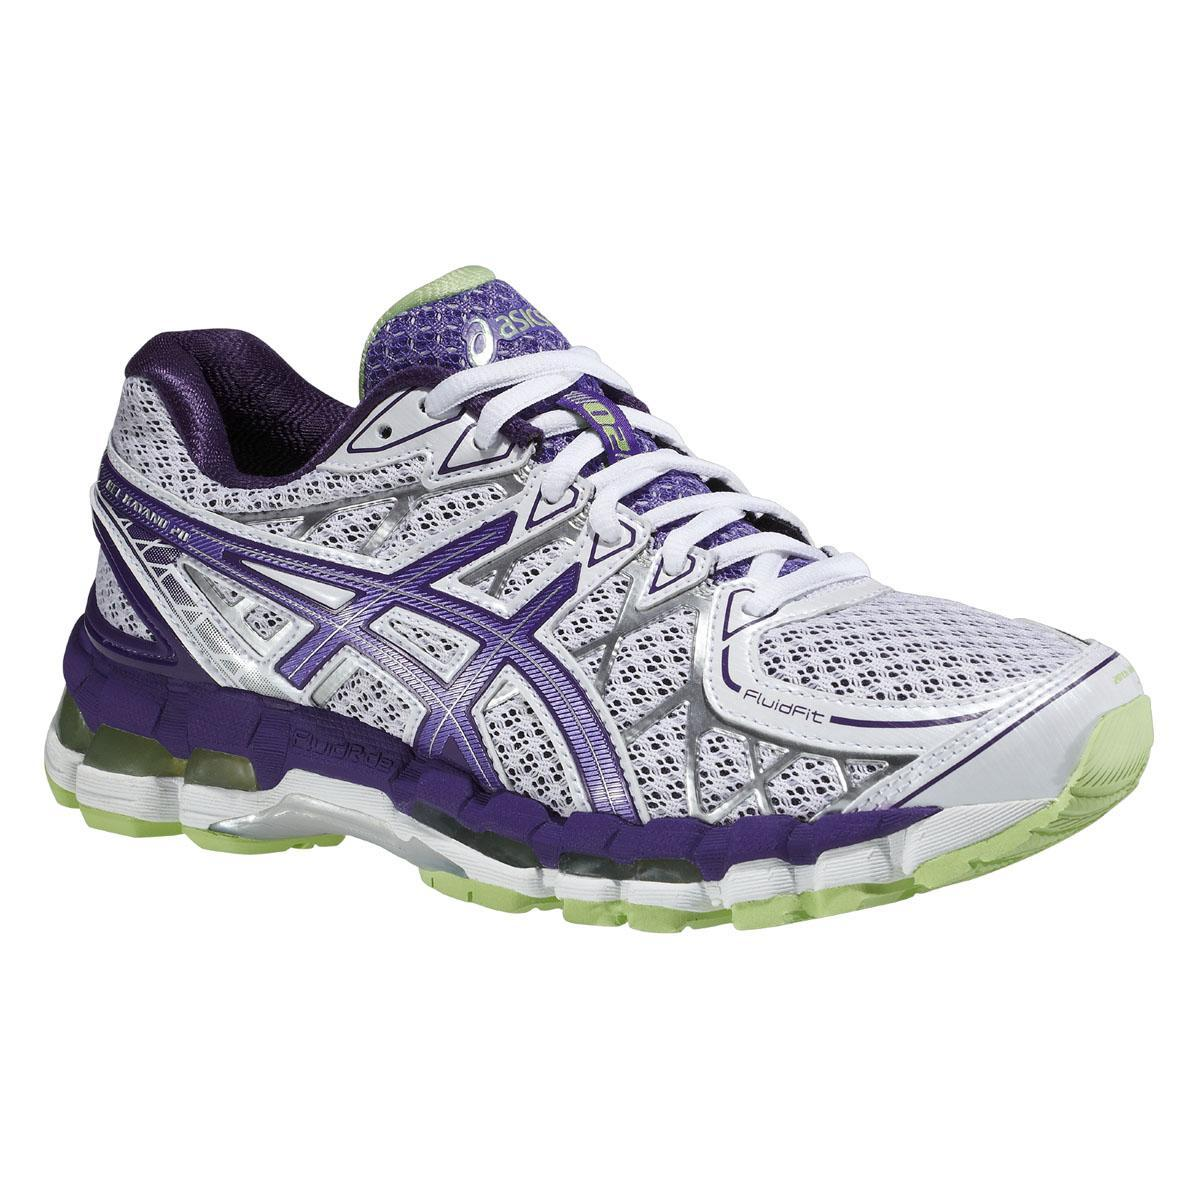 asics womens gel kayano 20 running shoes white purple. Black Bedroom Furniture Sets. Home Design Ideas